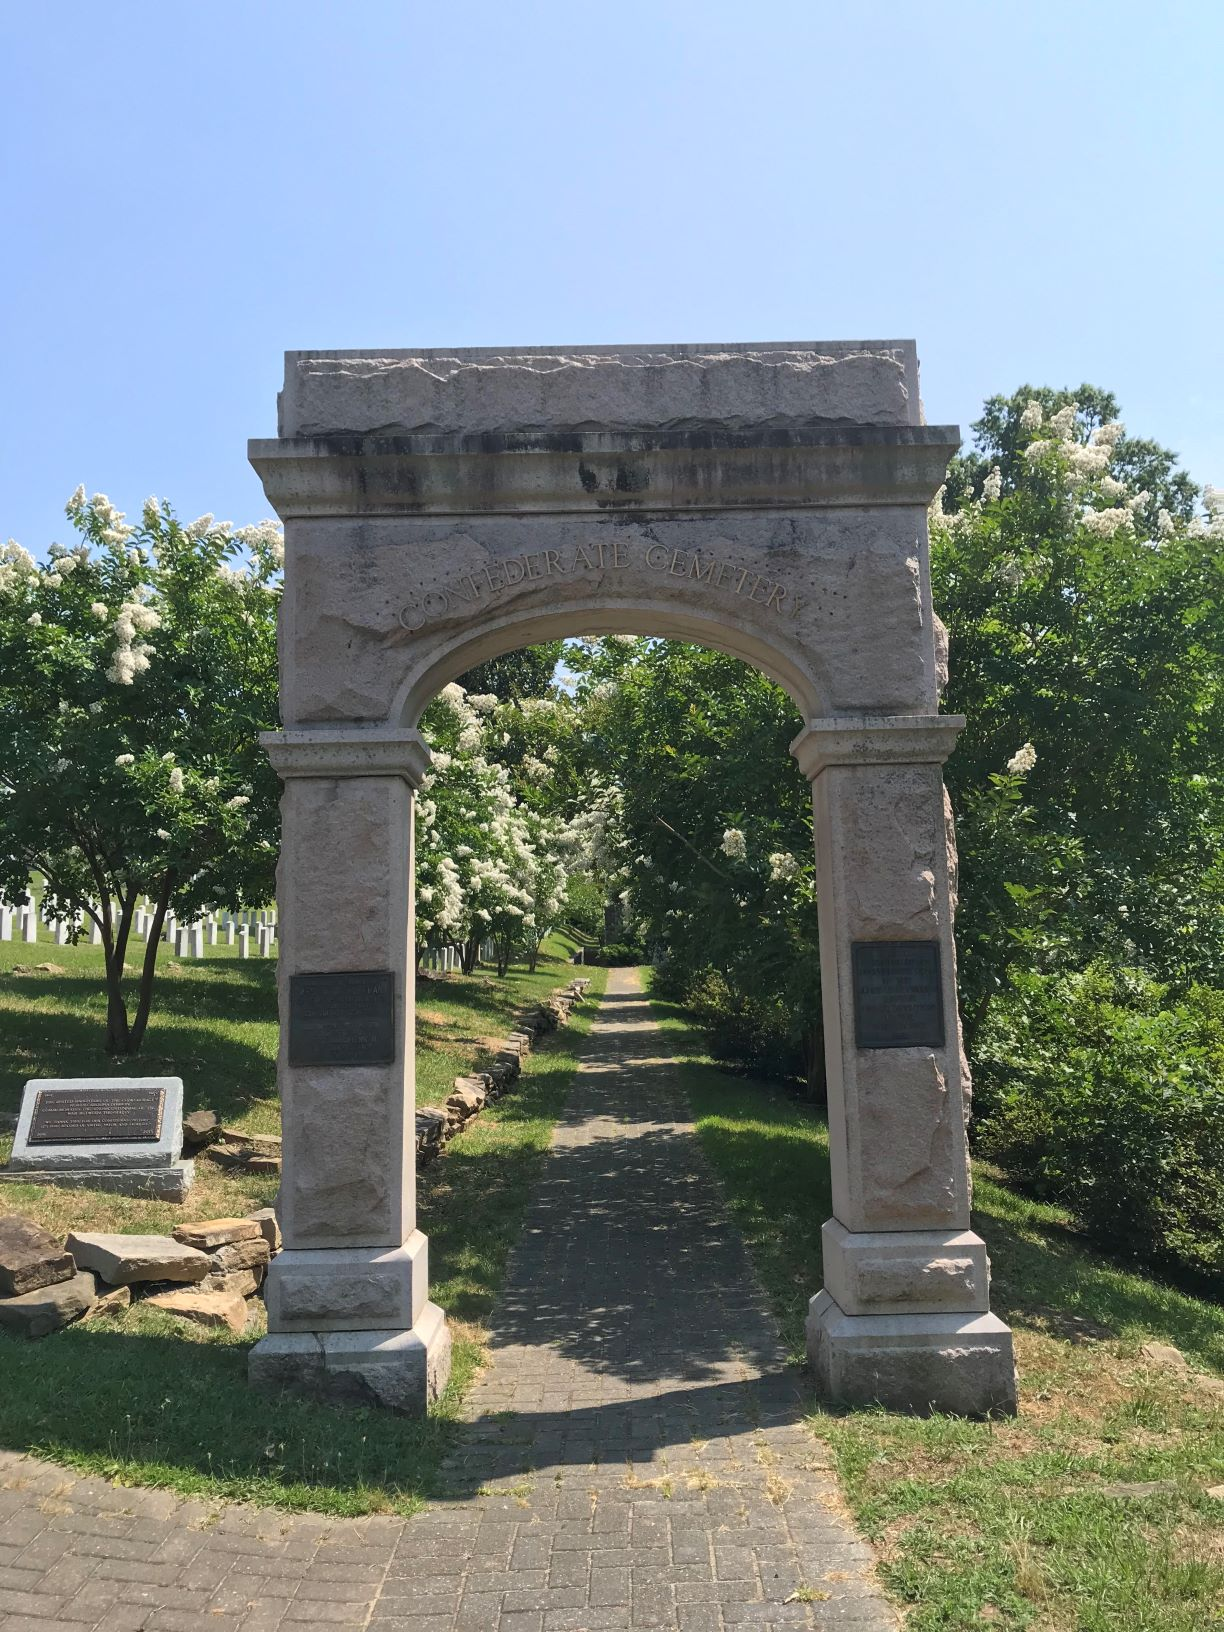 Memorial Arch, Donated in 1910 by the United Daughters of the Confederacy. Serves as the entrance to the Confederate section of the cemetery.